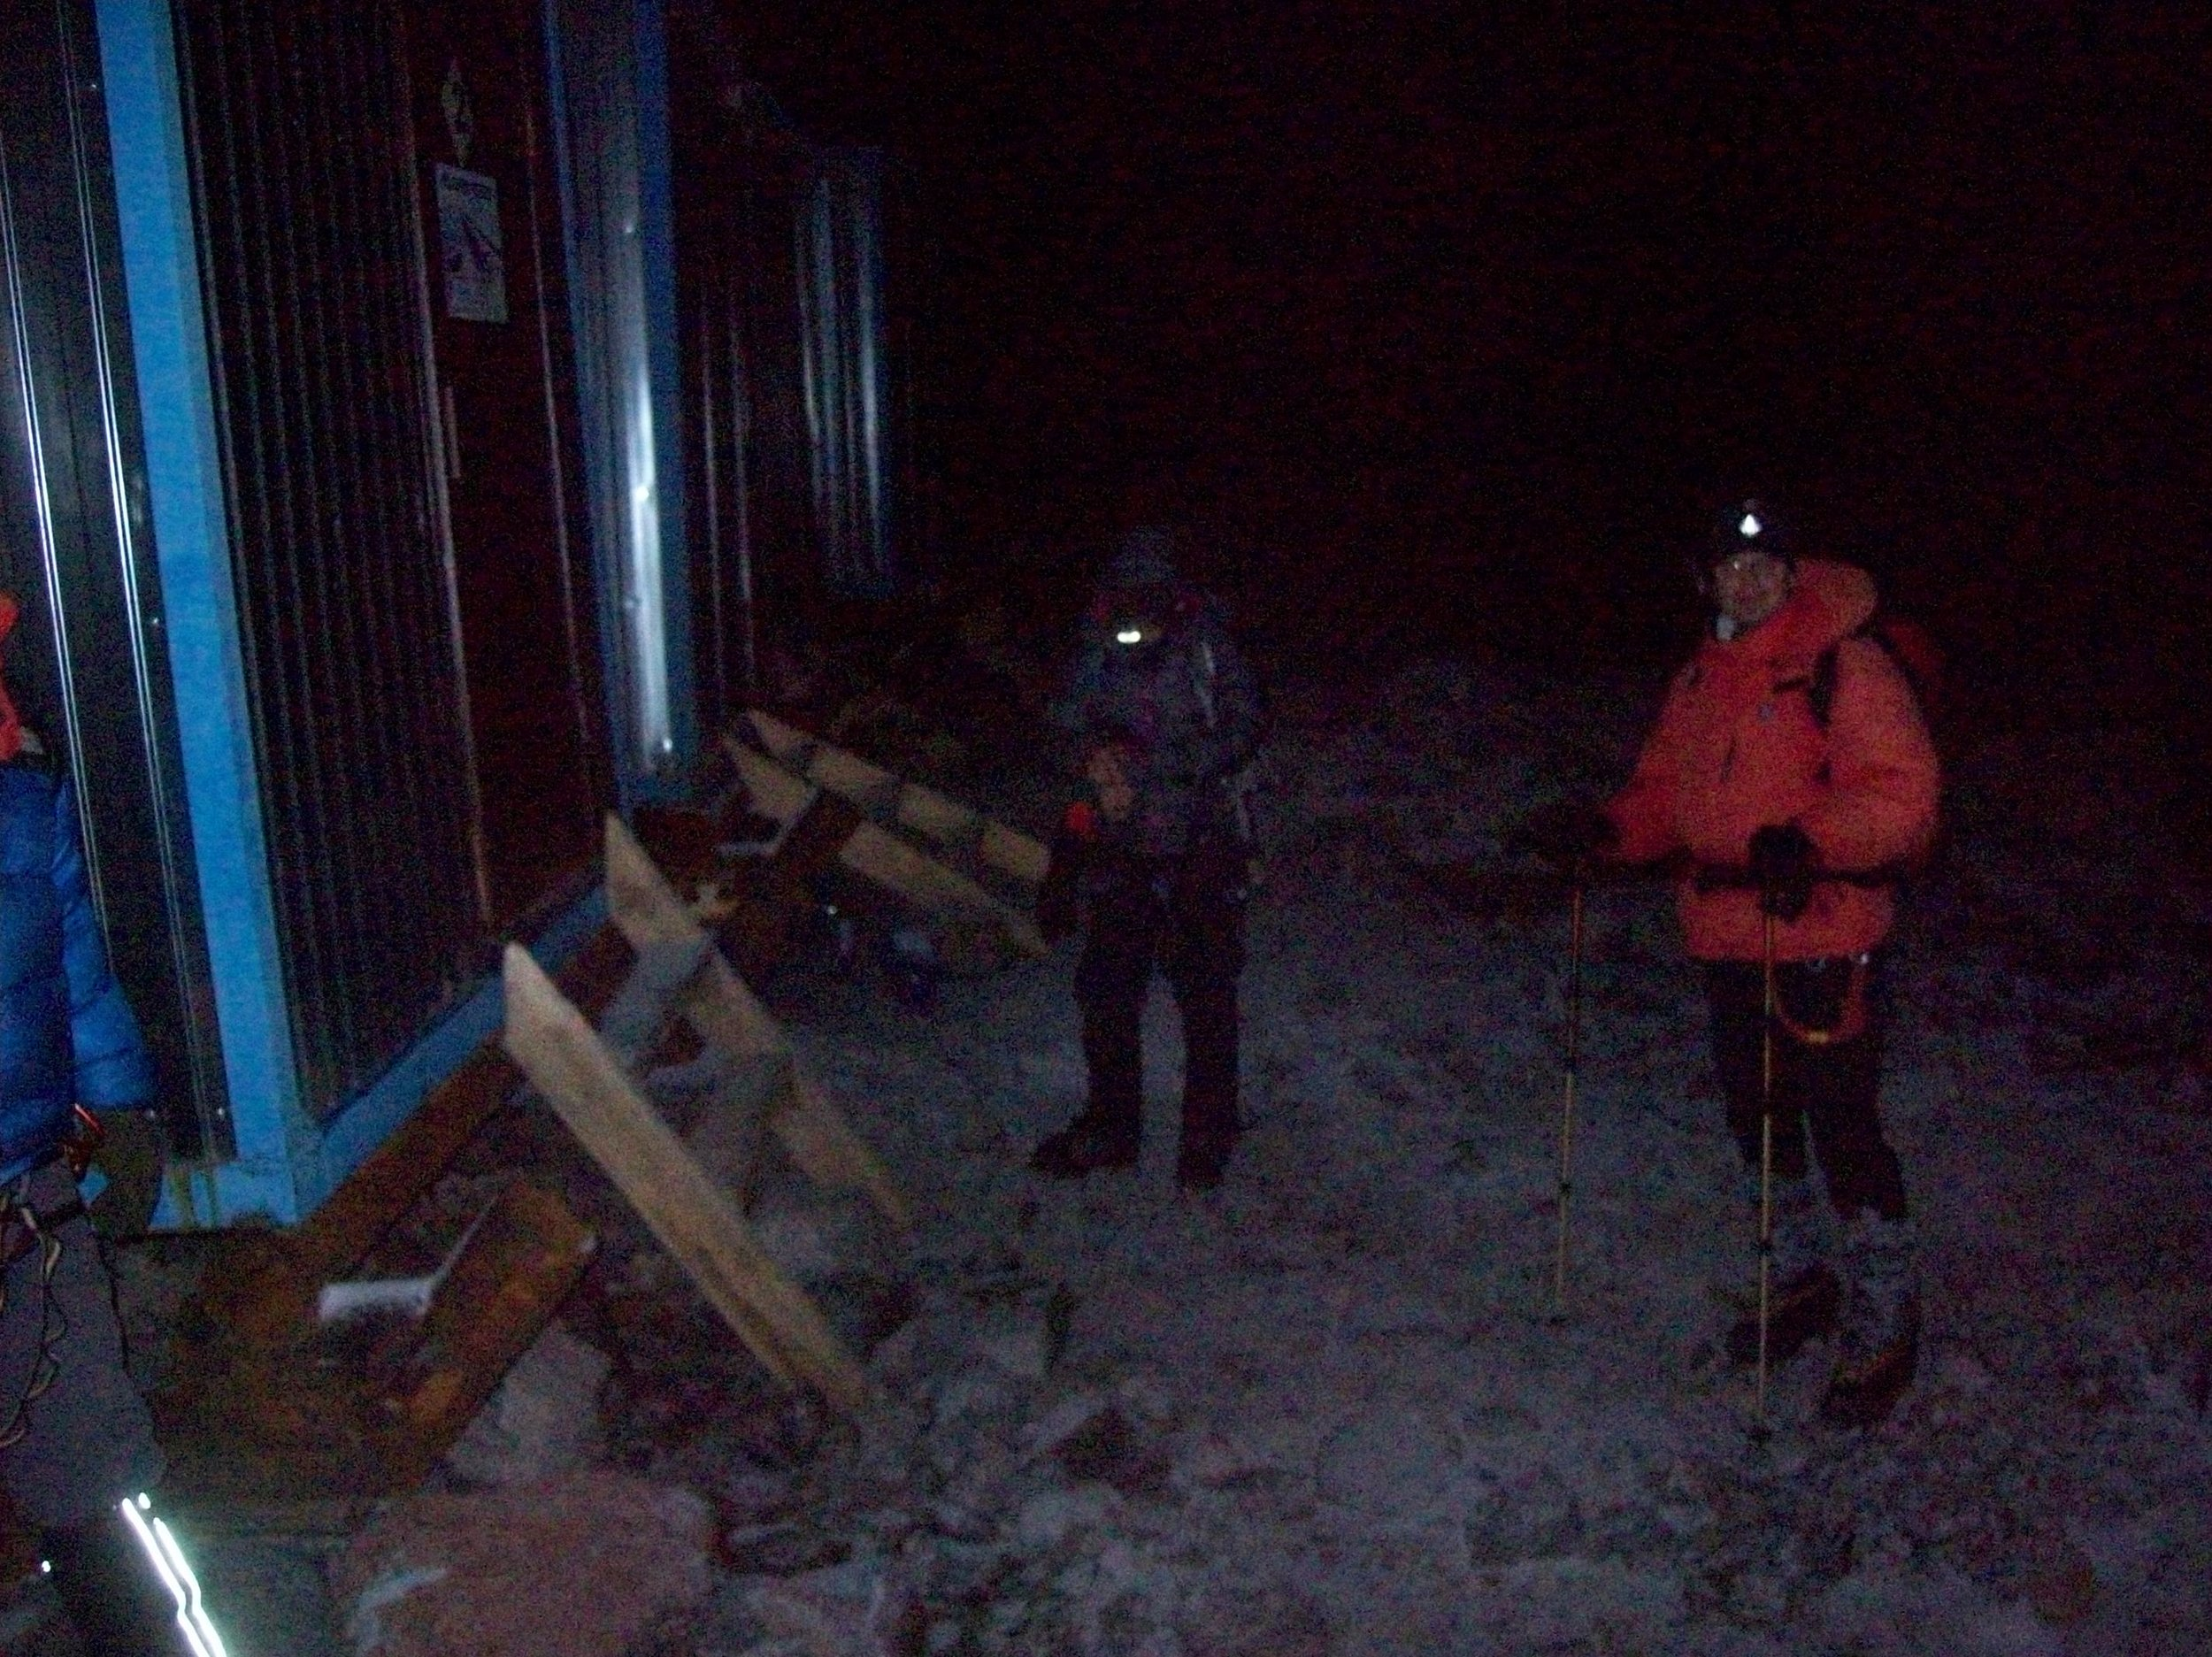 We started our climb very early, and we used our headlamps for several hours while it was dark out. The wind was howling, and it was very cold which caused the batteries in my headlamp to die. We took a snowcat up the first section, and braved the cold for the rest.